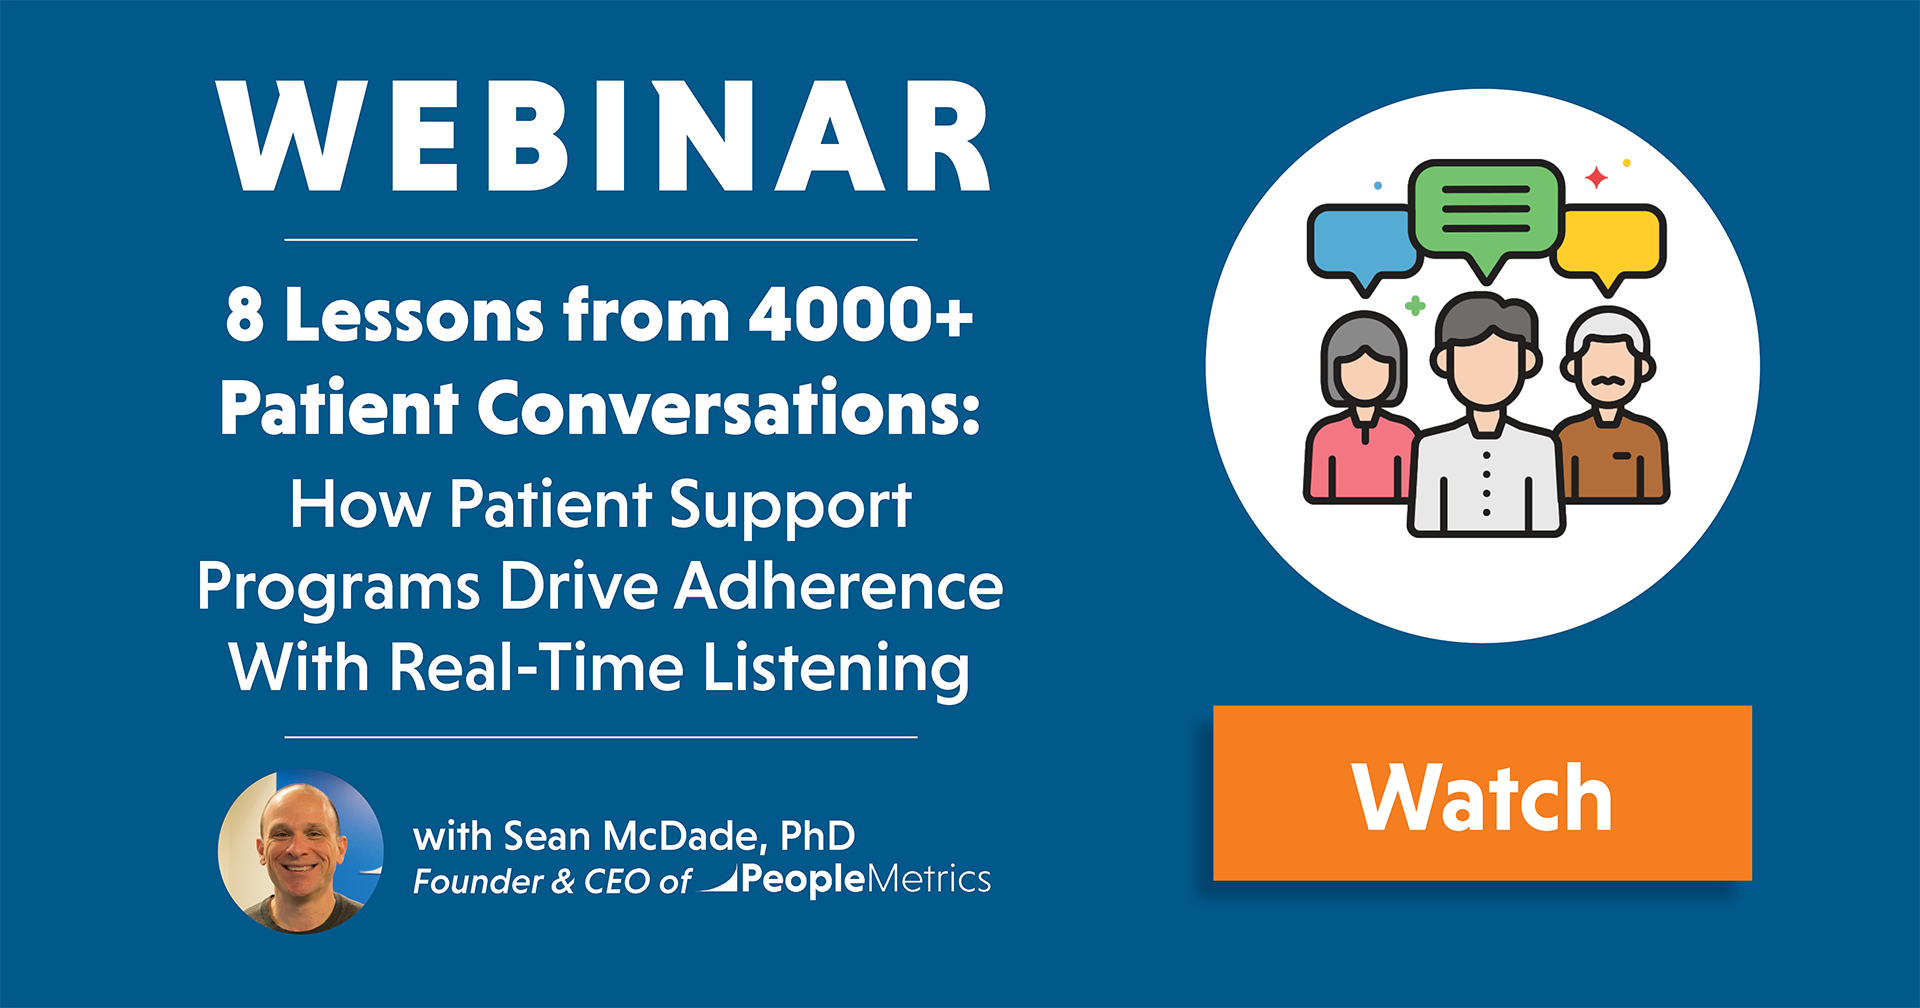 Webinar Recording | 8 Lessons from 4000+ Patient Conversations:  How Patient Support Programs Drive Adherence With Real-Time Listening